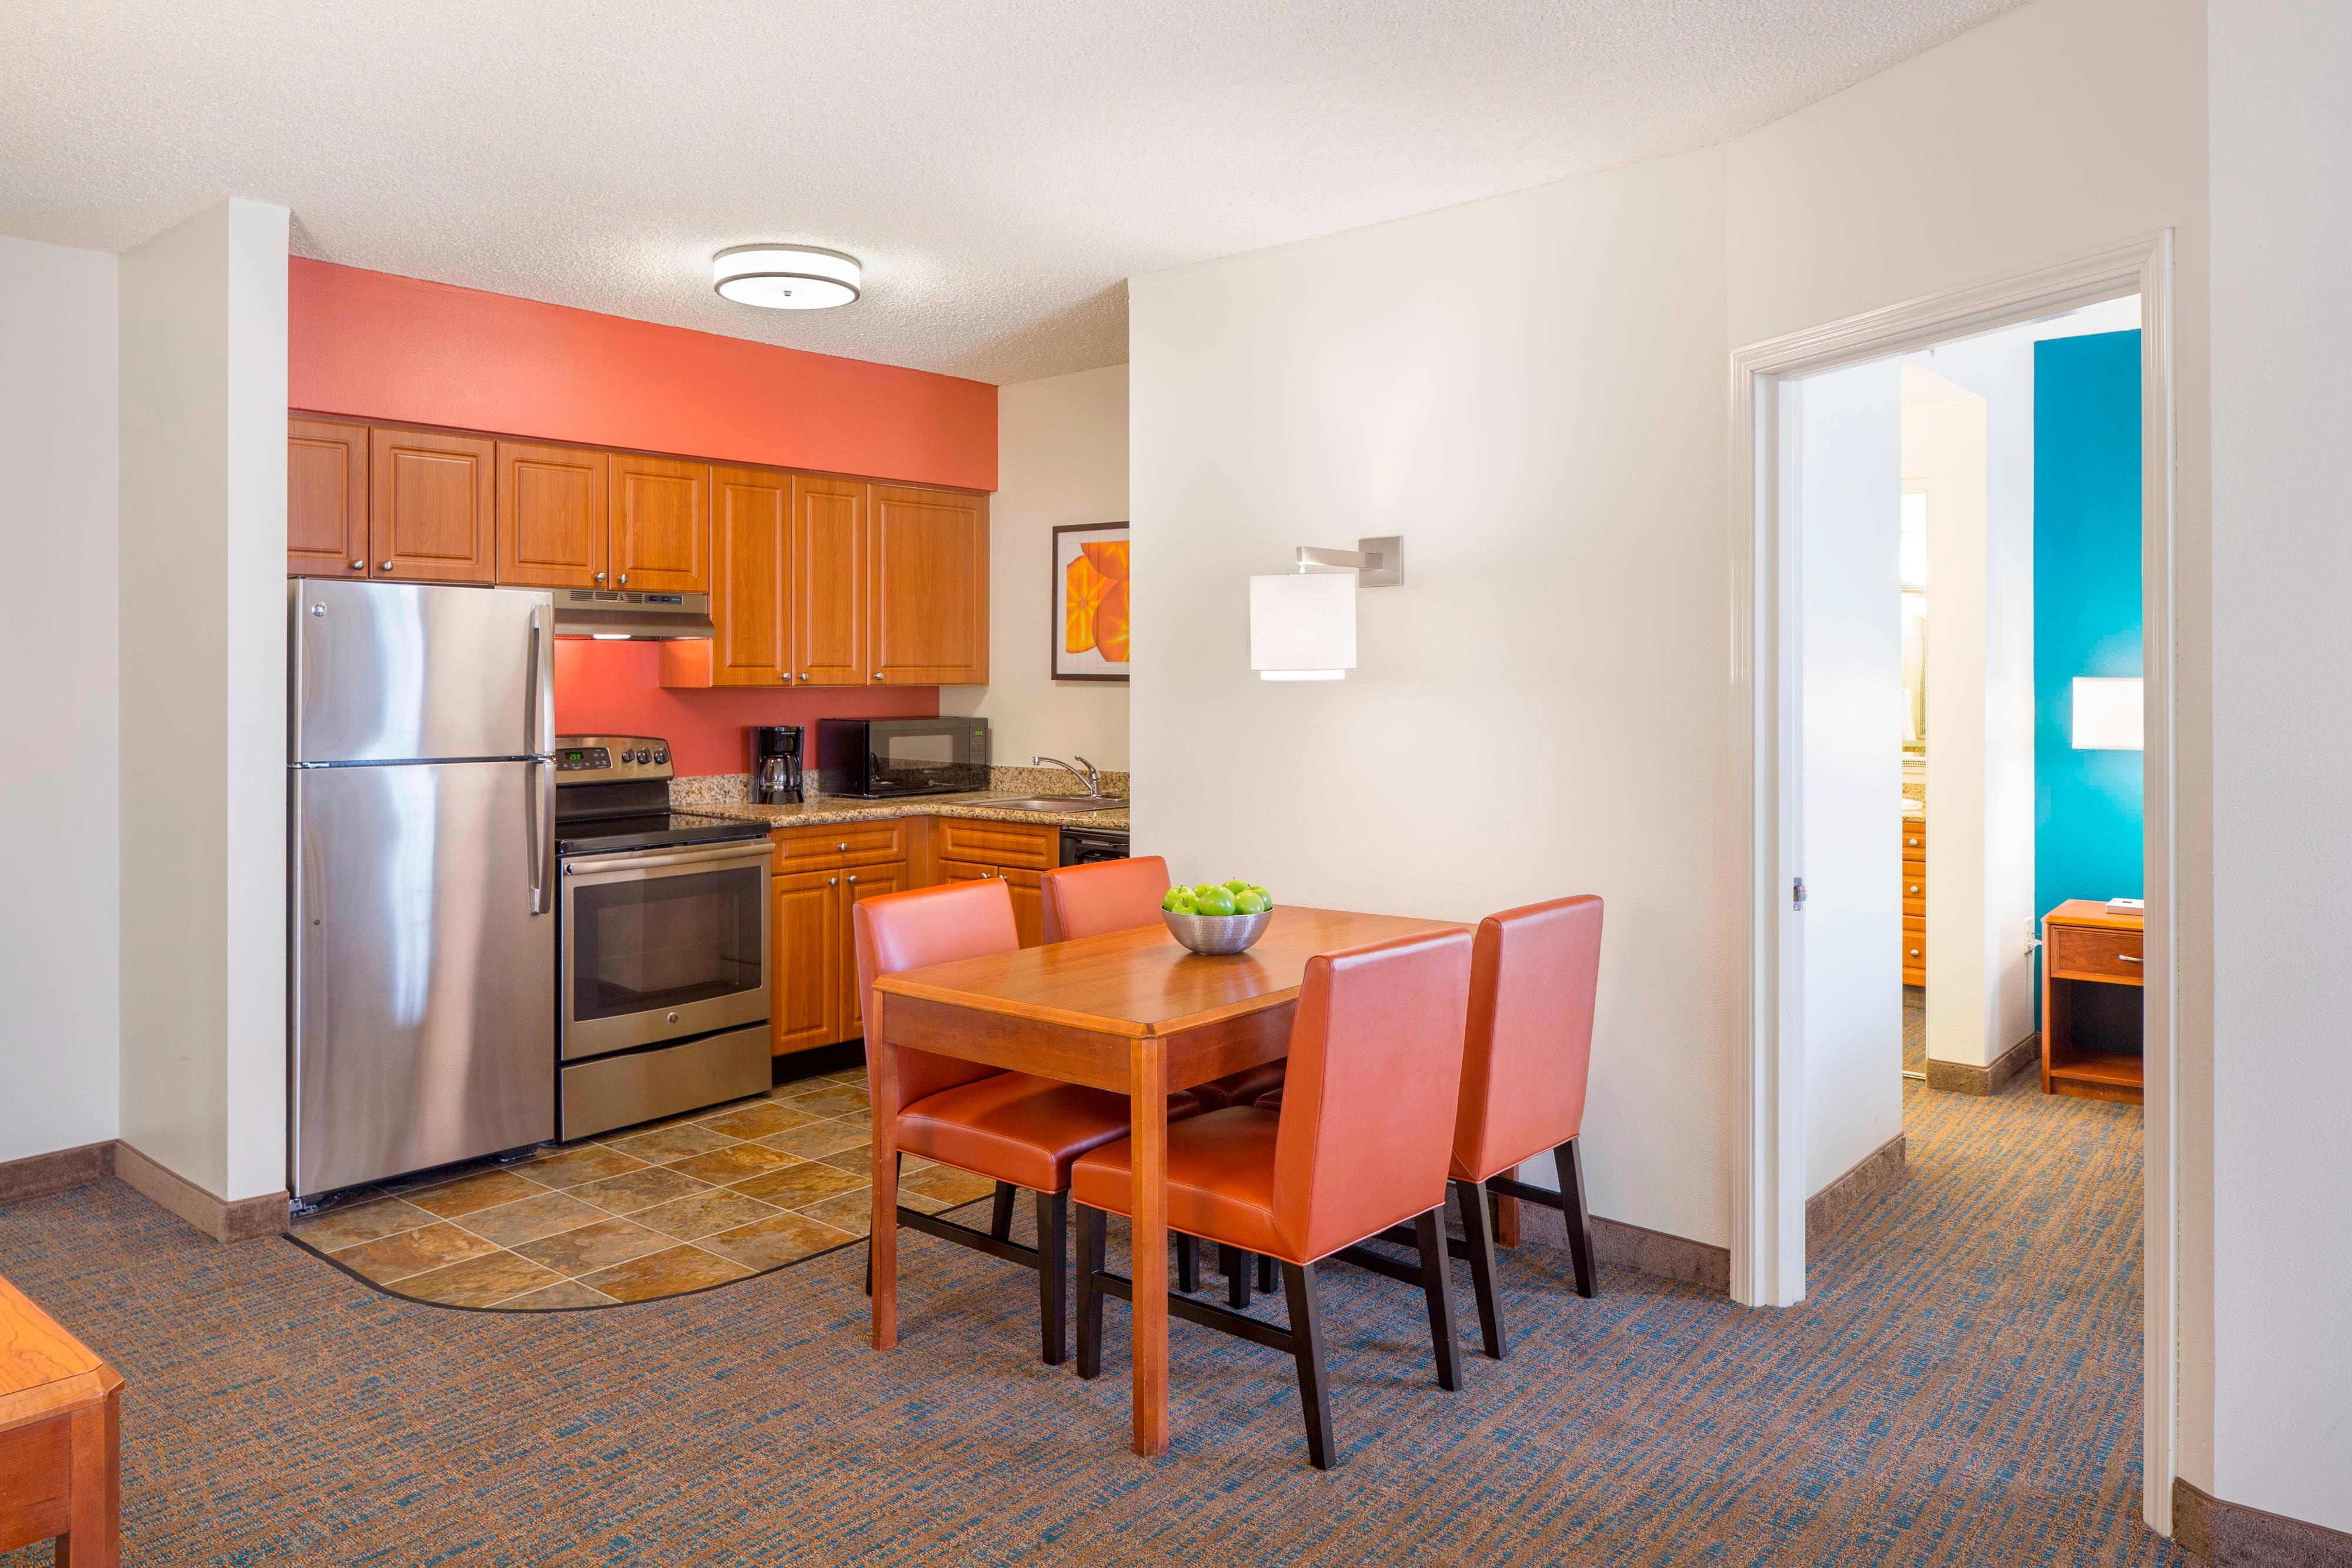 kitchen extended stay hotel Portland OR Residence Inn